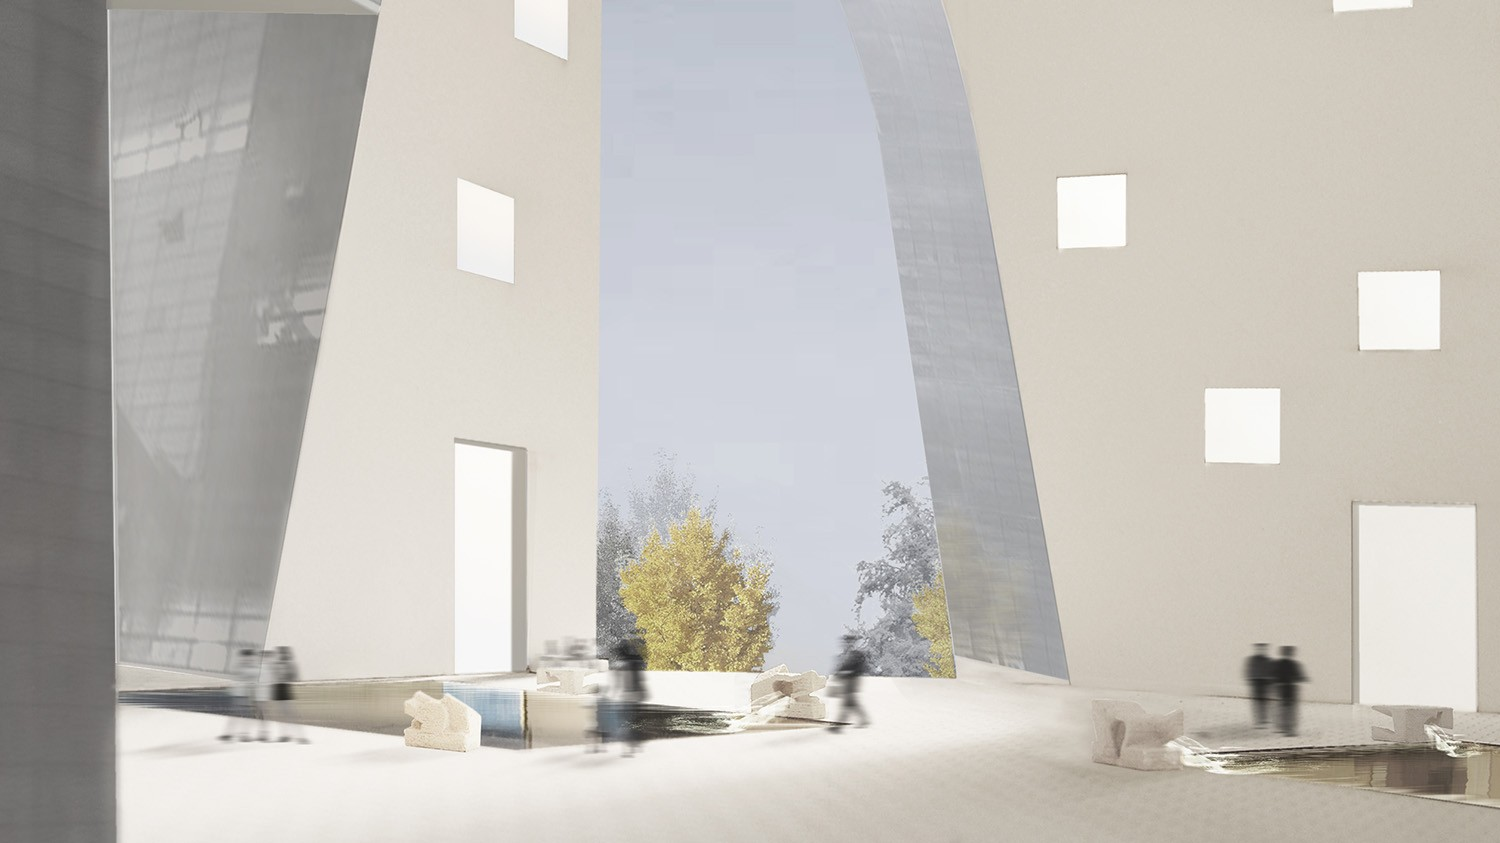 https://stevenholl.sfo2.digitaloceanspaces.com/uploads/projects/project-images/StevenHollArchitects_LiZe_2013-11-21southentry_WH.jpg